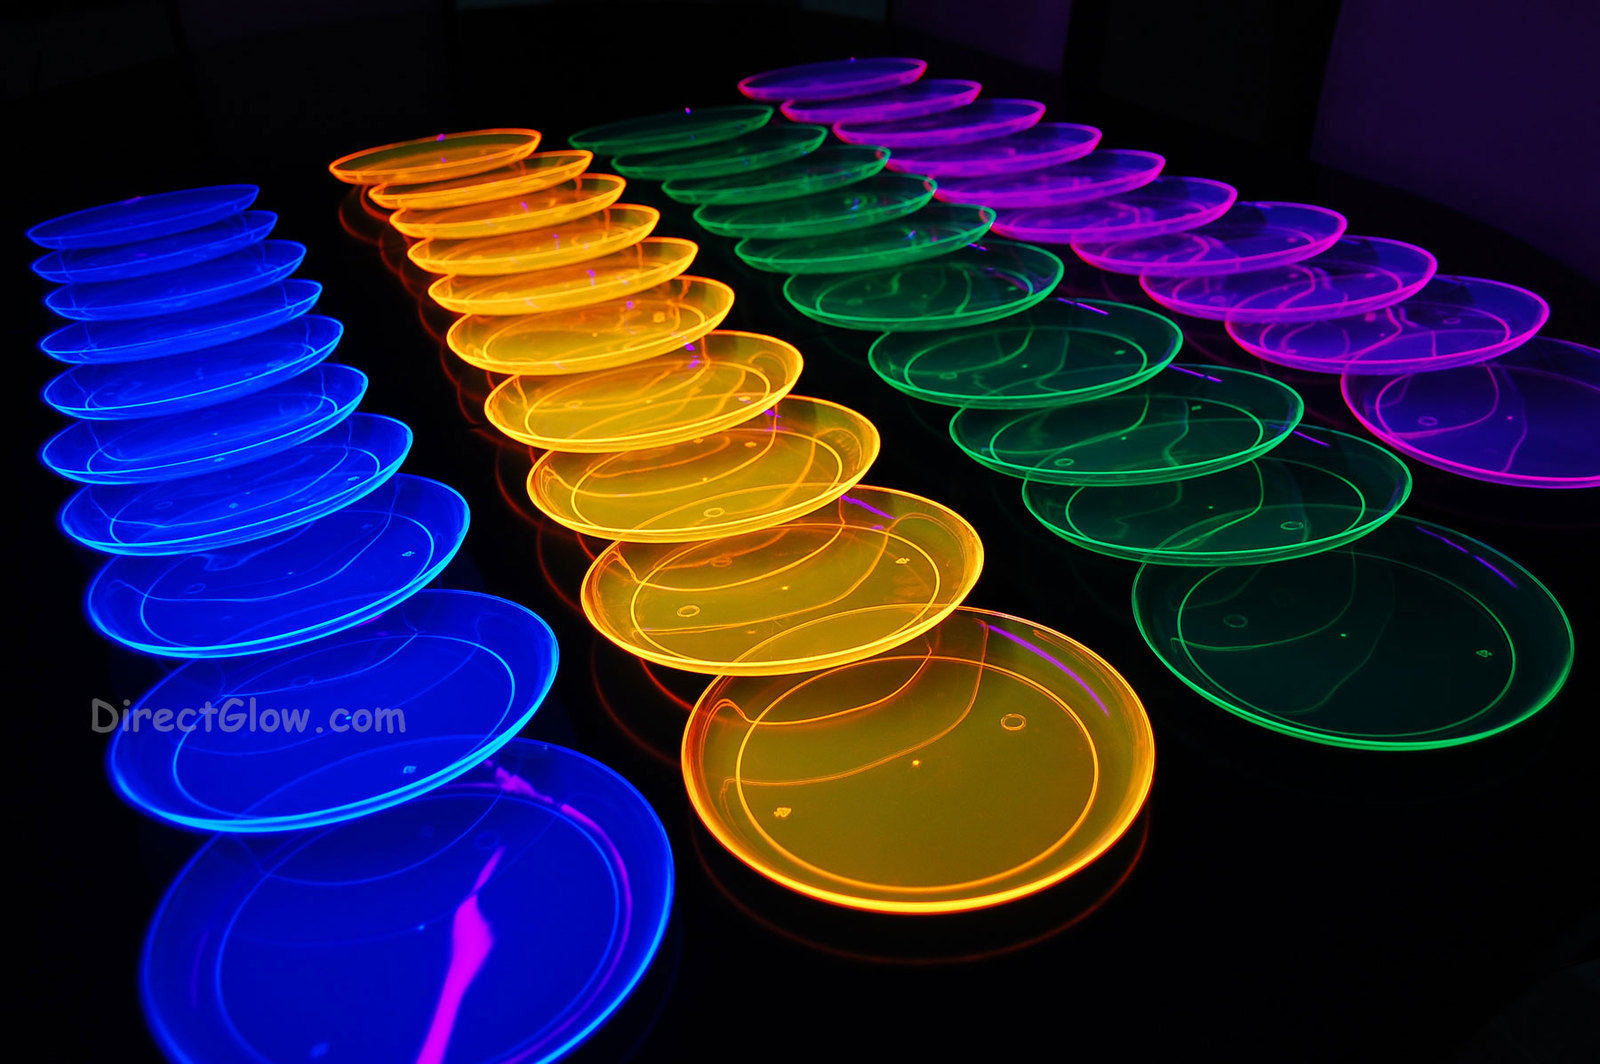 7.5 inch round blacklight plates4